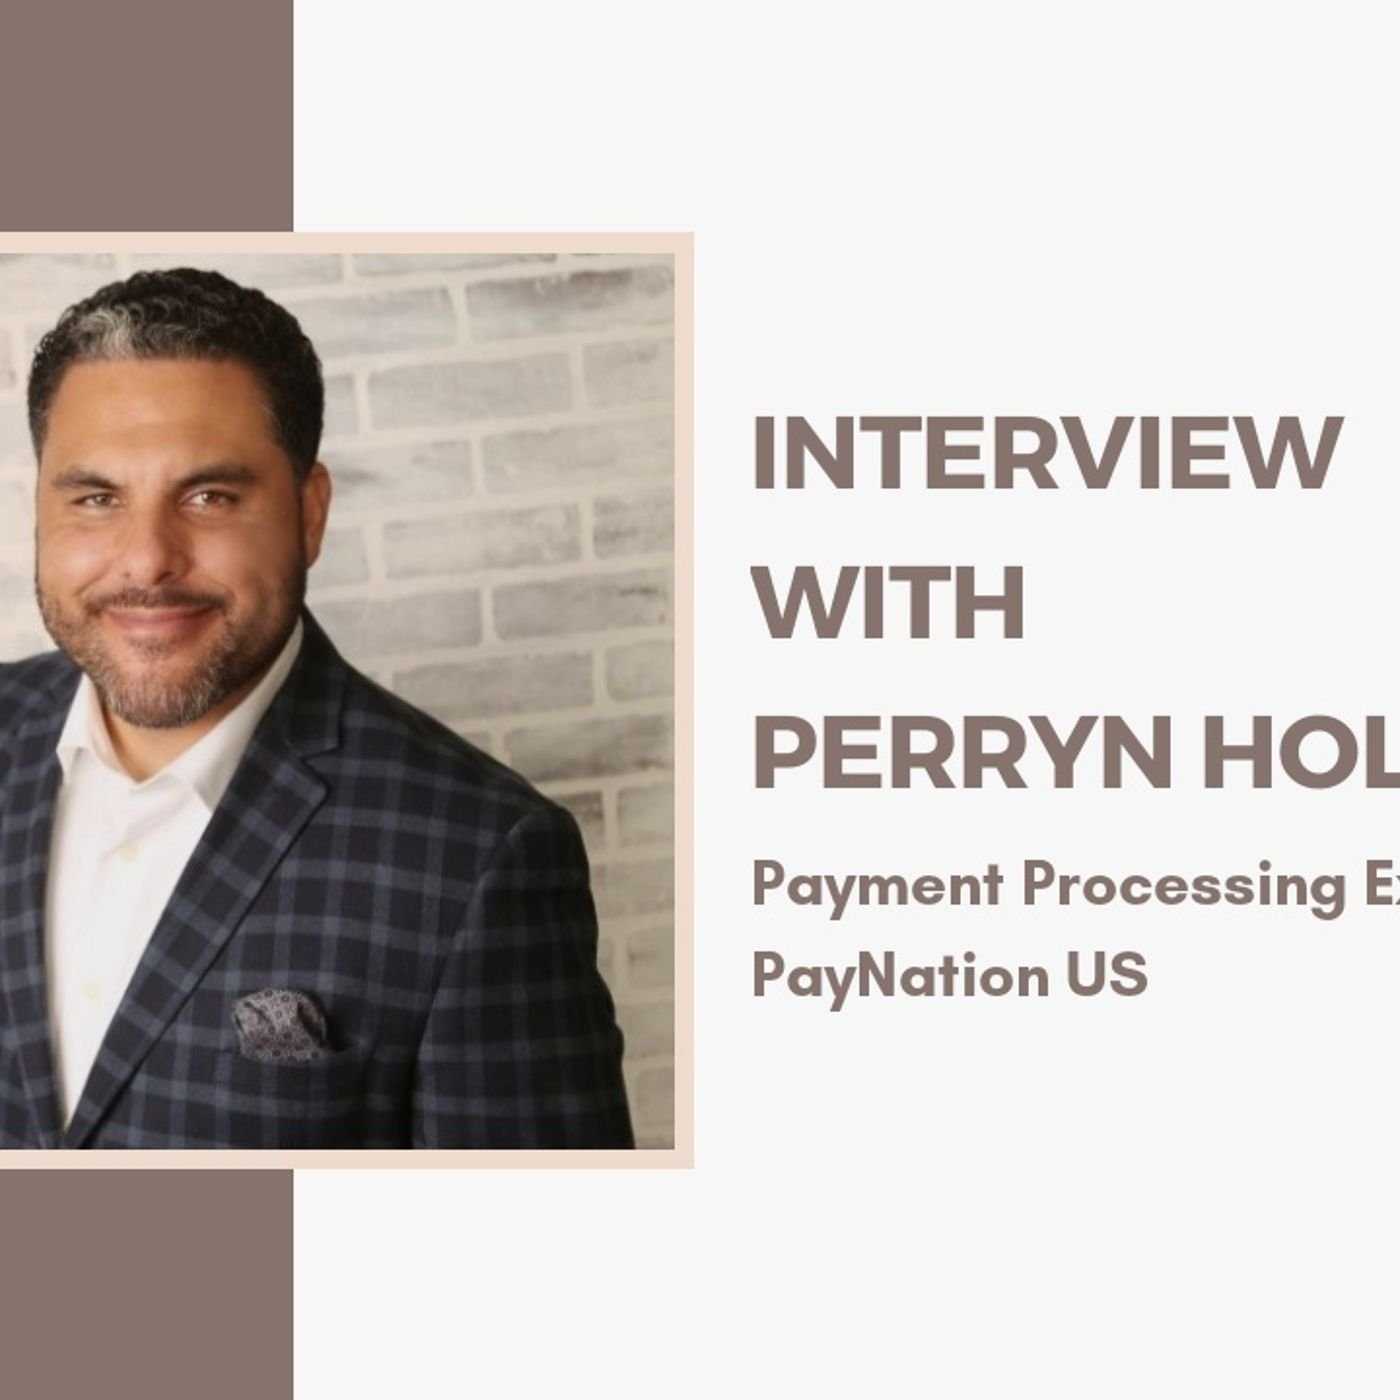 [ HTJ Podcast ] Interview with Perryn Holtrop - Payment Processing Expert at PayNation U.S.